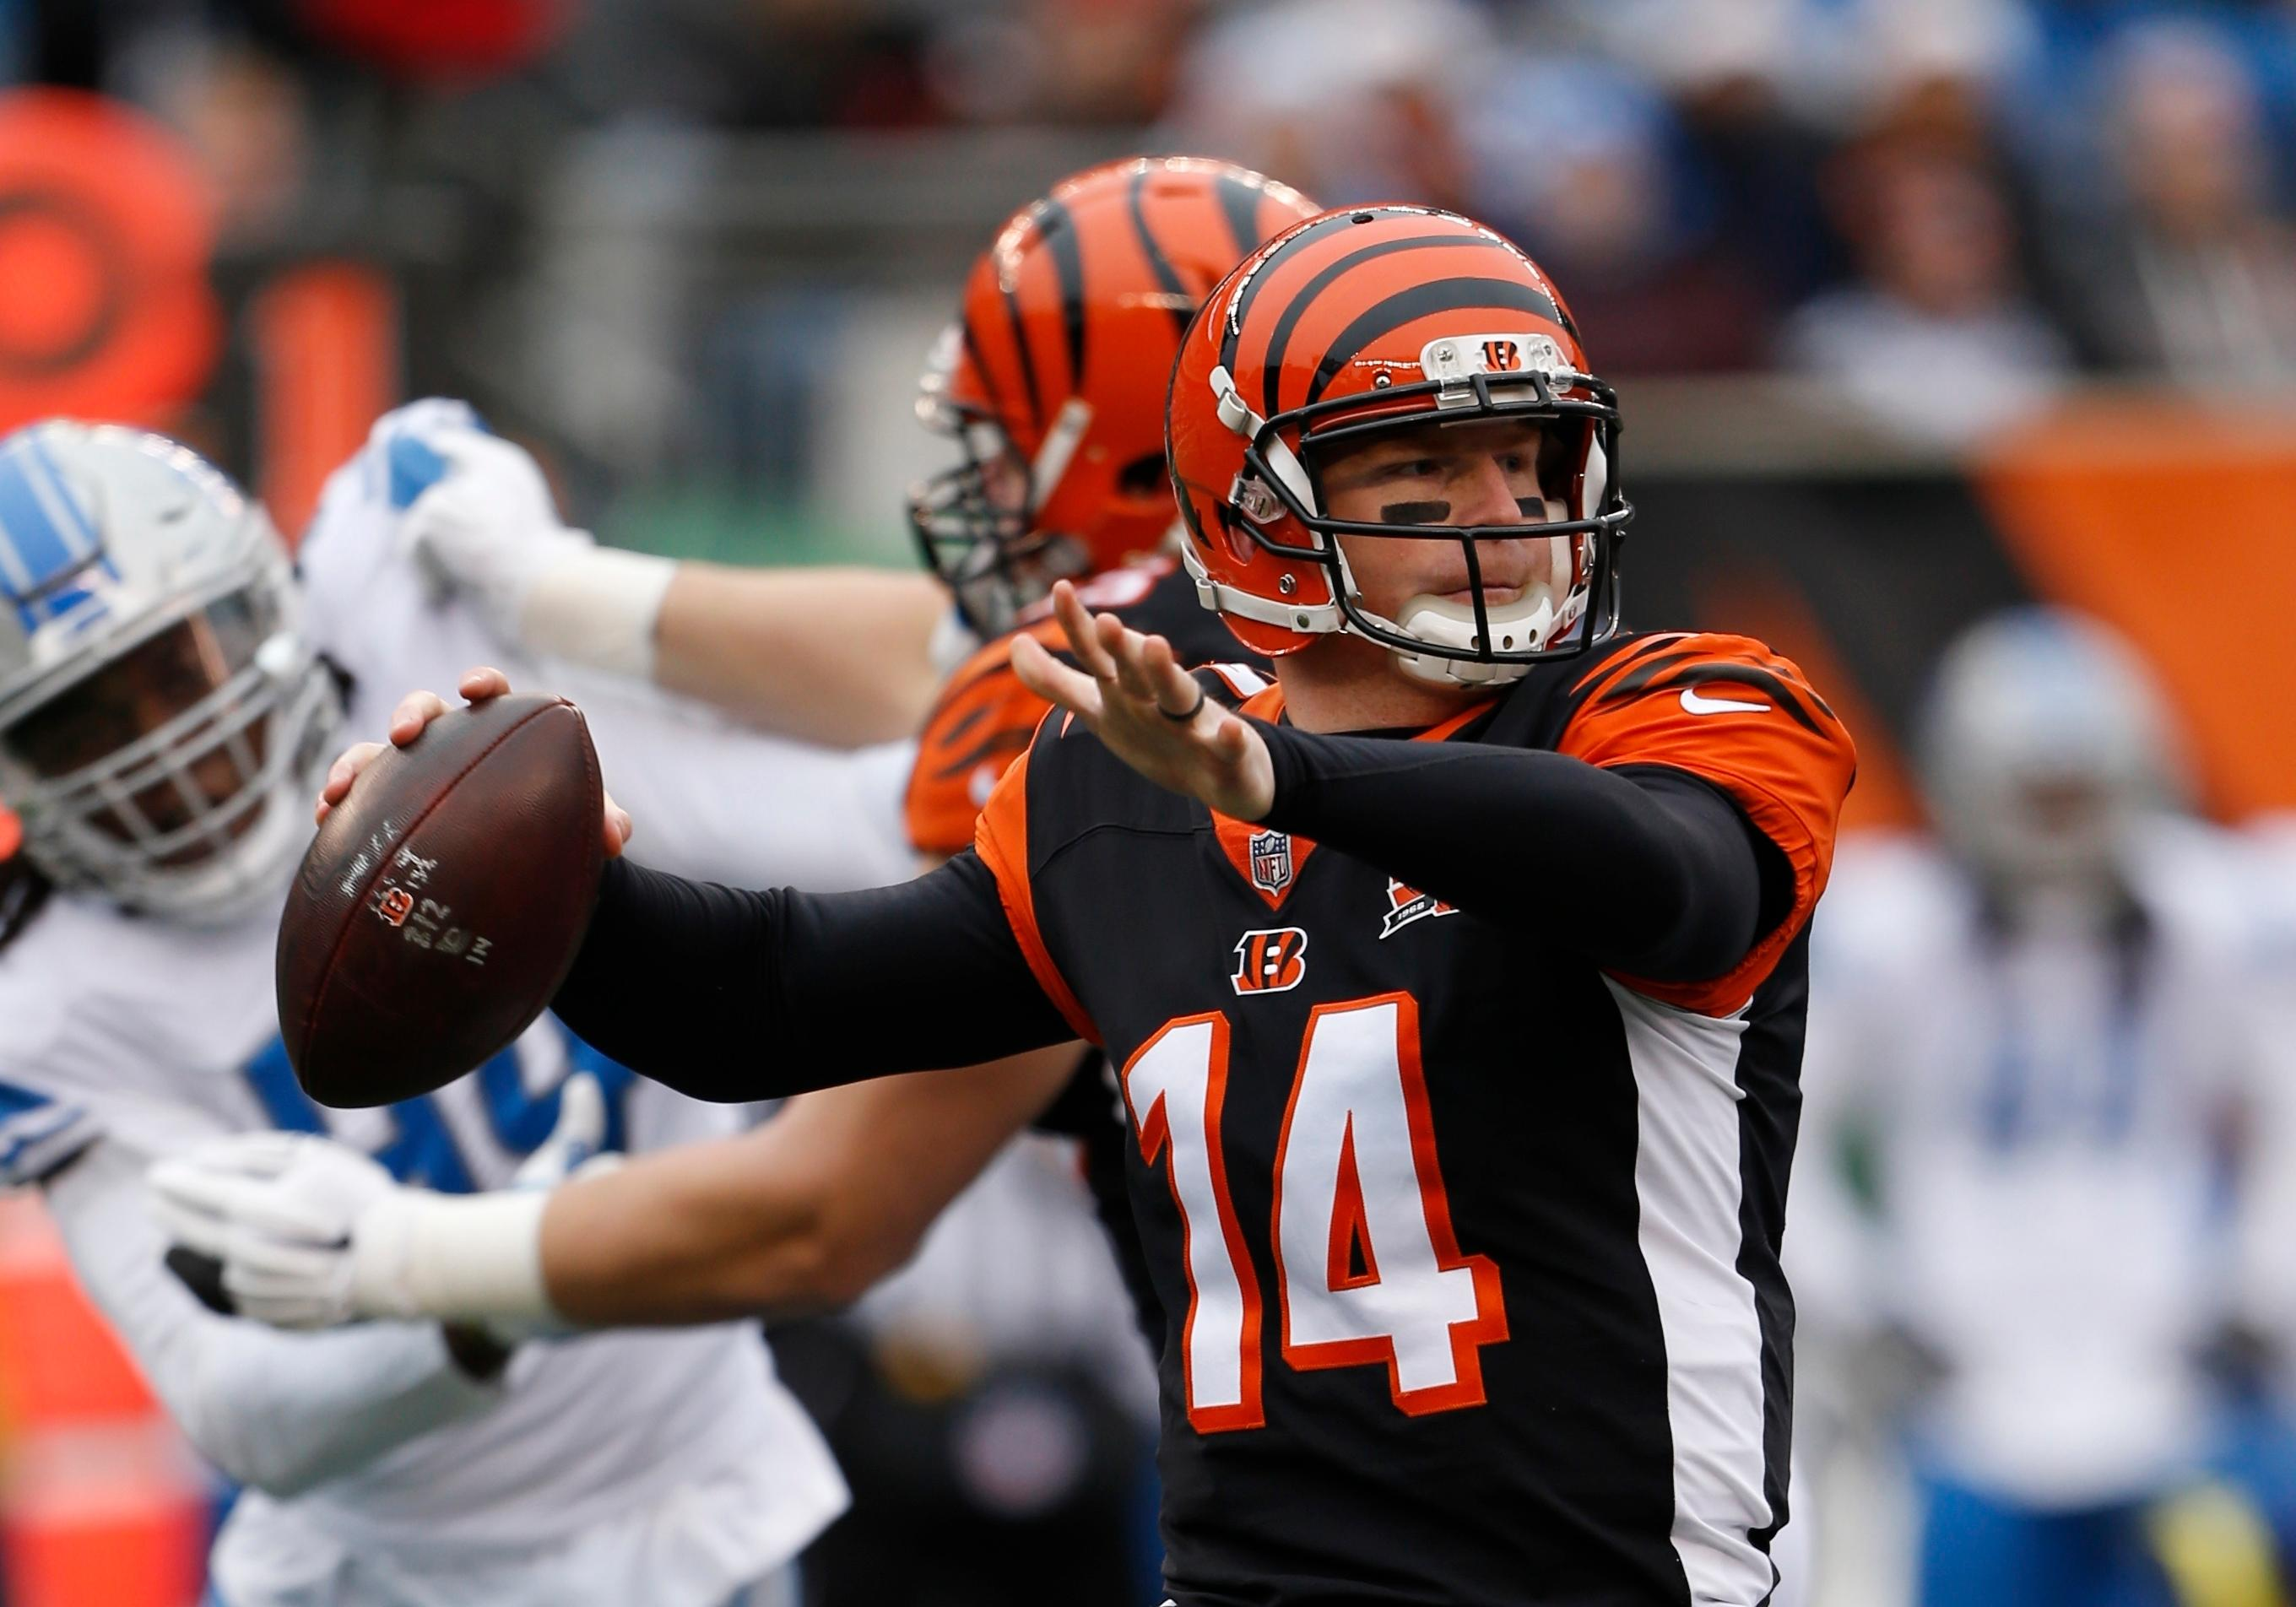 Cincinnati Bengals quarterback Andy Dalton throws during the first half of an NFL football game against the Detroit Lions, Sunday, Dec. 24, 2017, in Cincinnati. (AP Photo/Frank Victores)